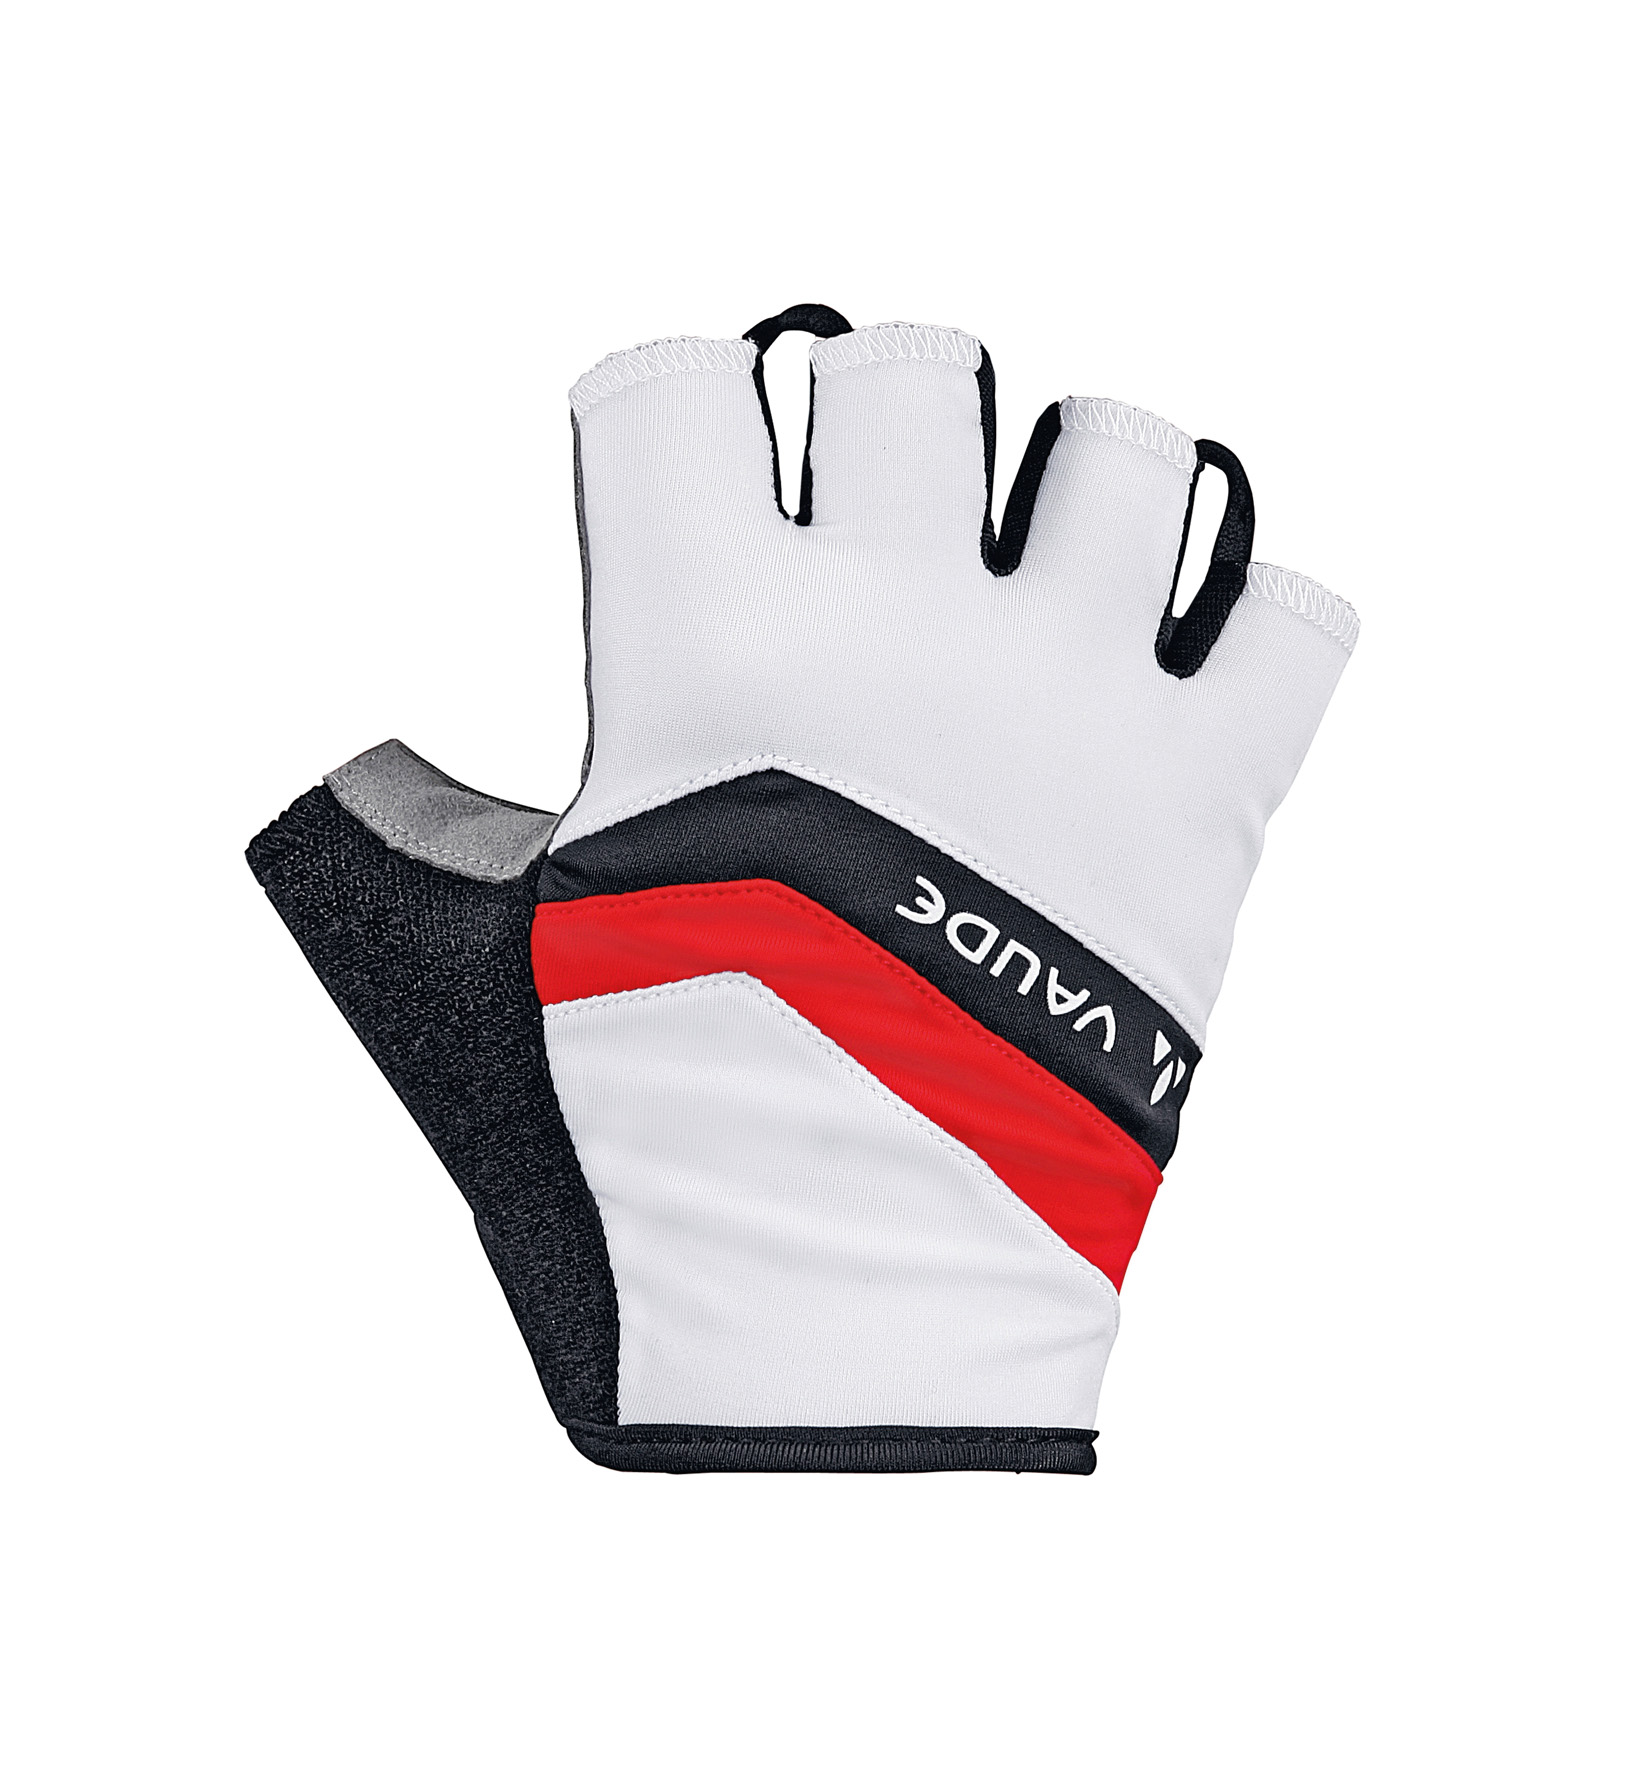 VAUDE Men´s Active Gloves white Größe 7 - schneider-sports